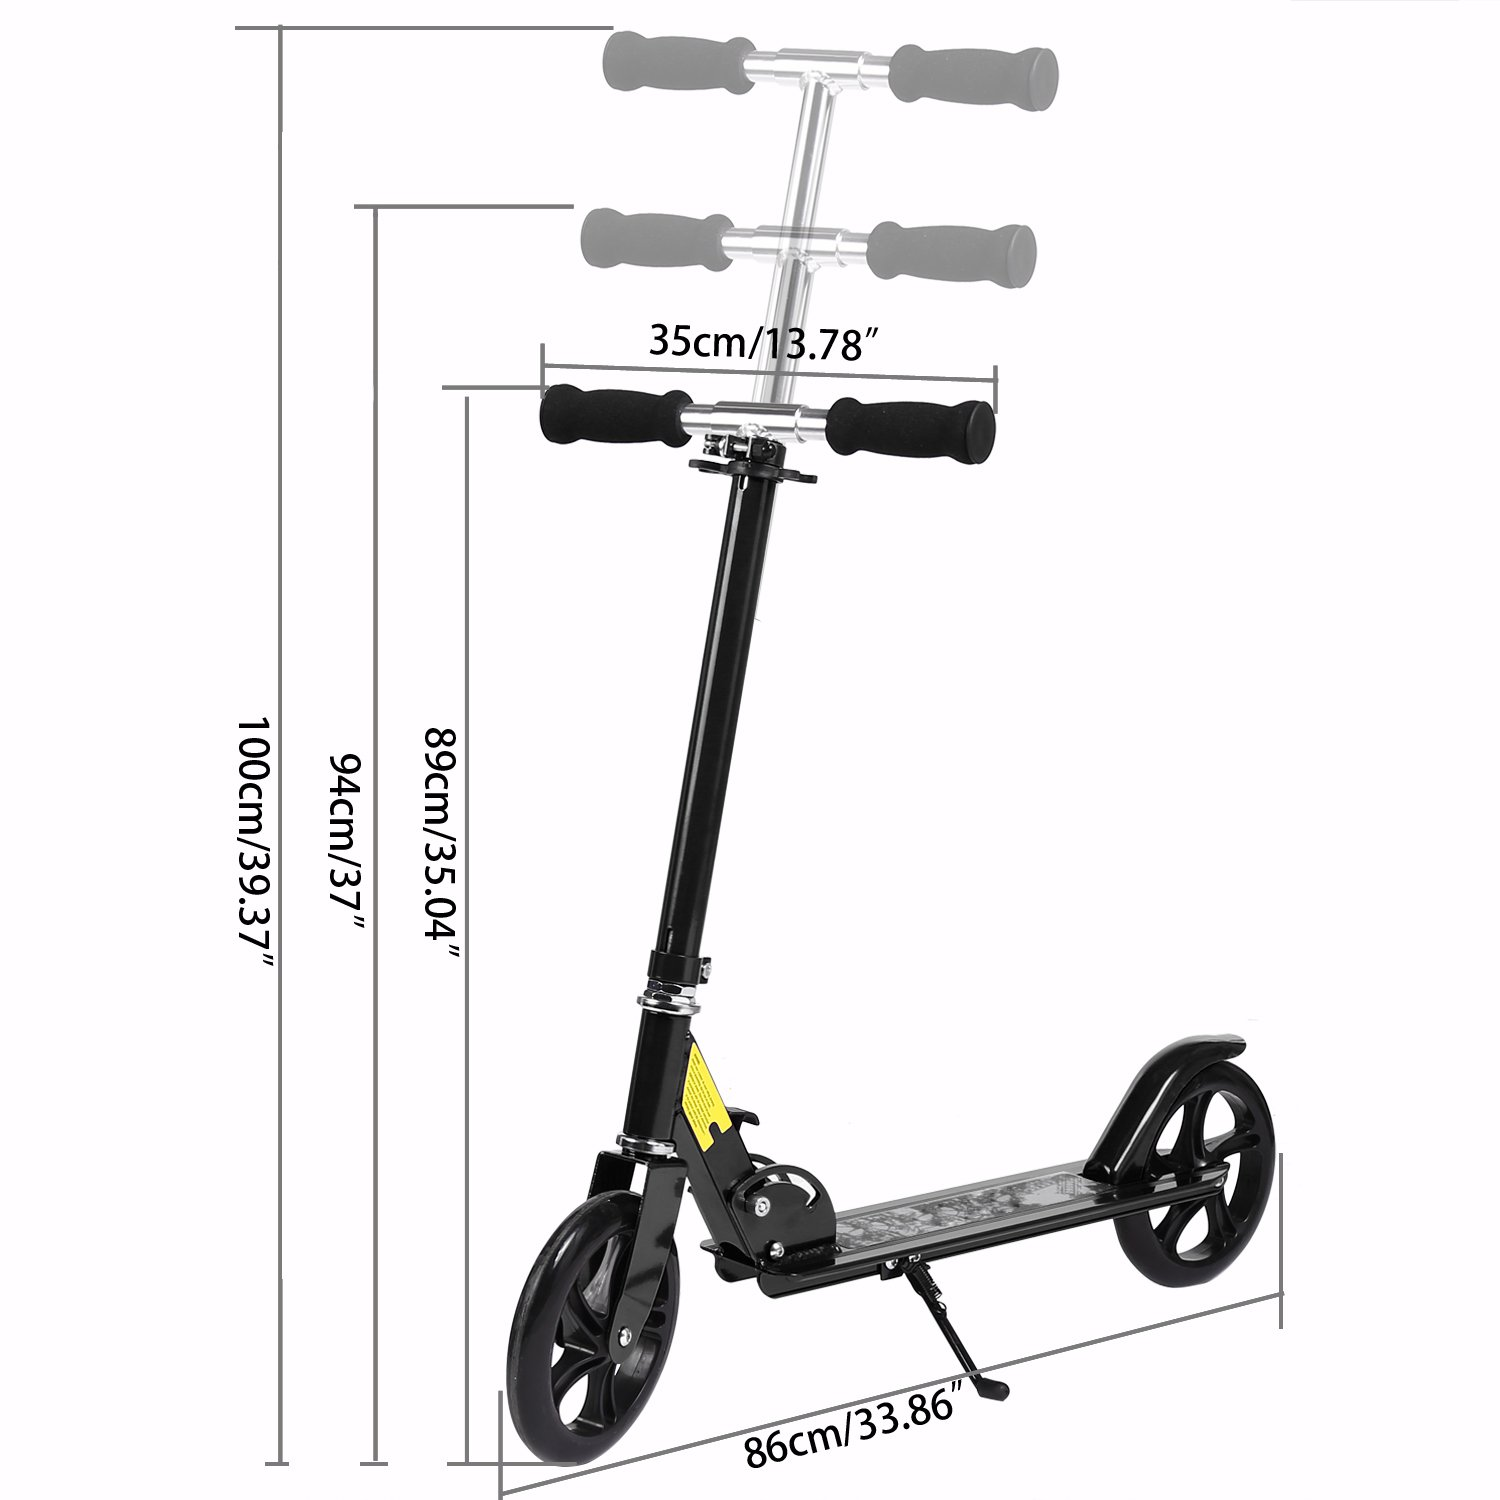 Binxin New Generation Alloy Kick Scooter for Teens Adult with 2 Large 200MM Wheels,Height Adjustable Folding Frame/Rear Mudguard, Rear ...